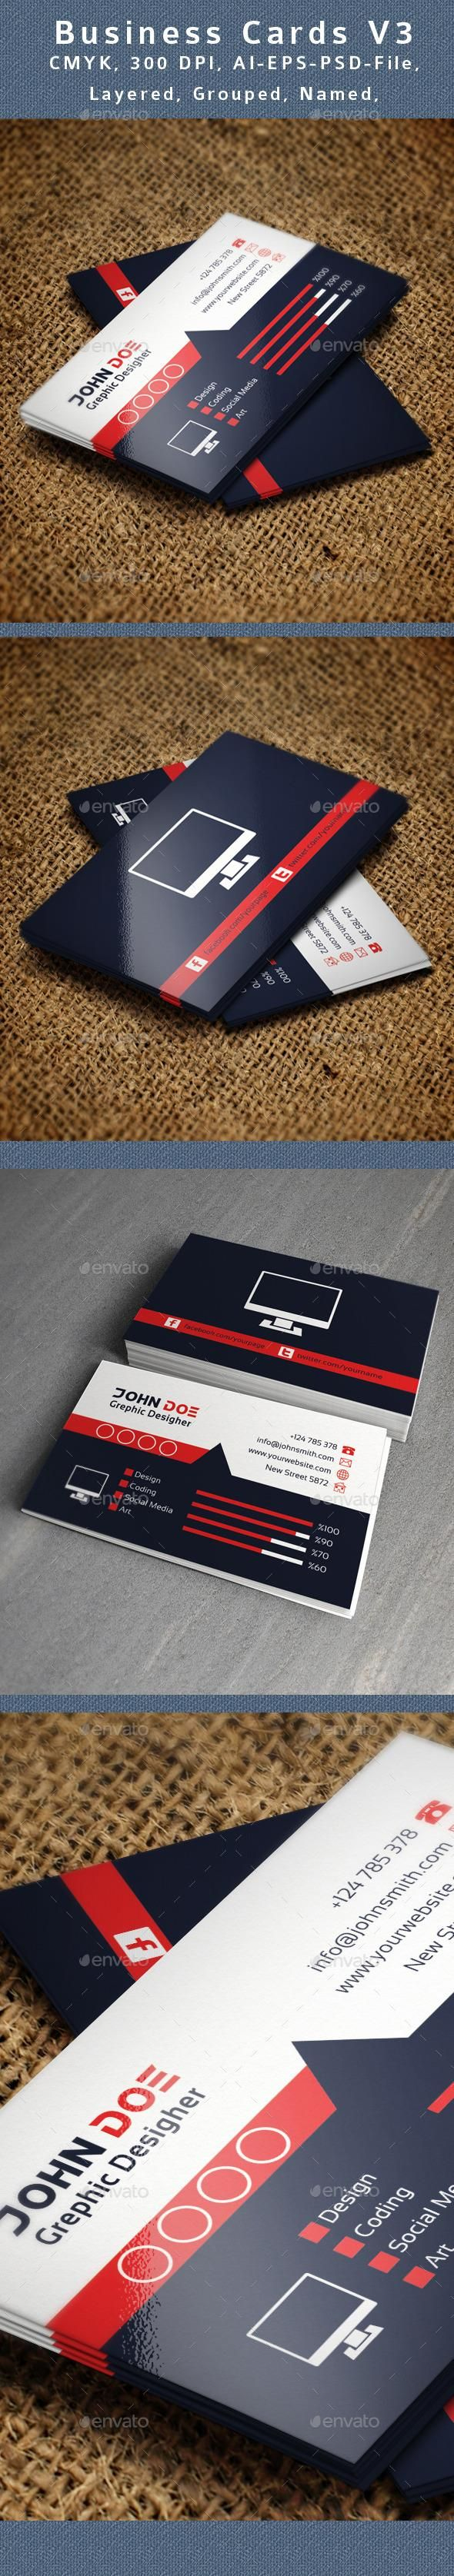 164 best business cards images on pinterest